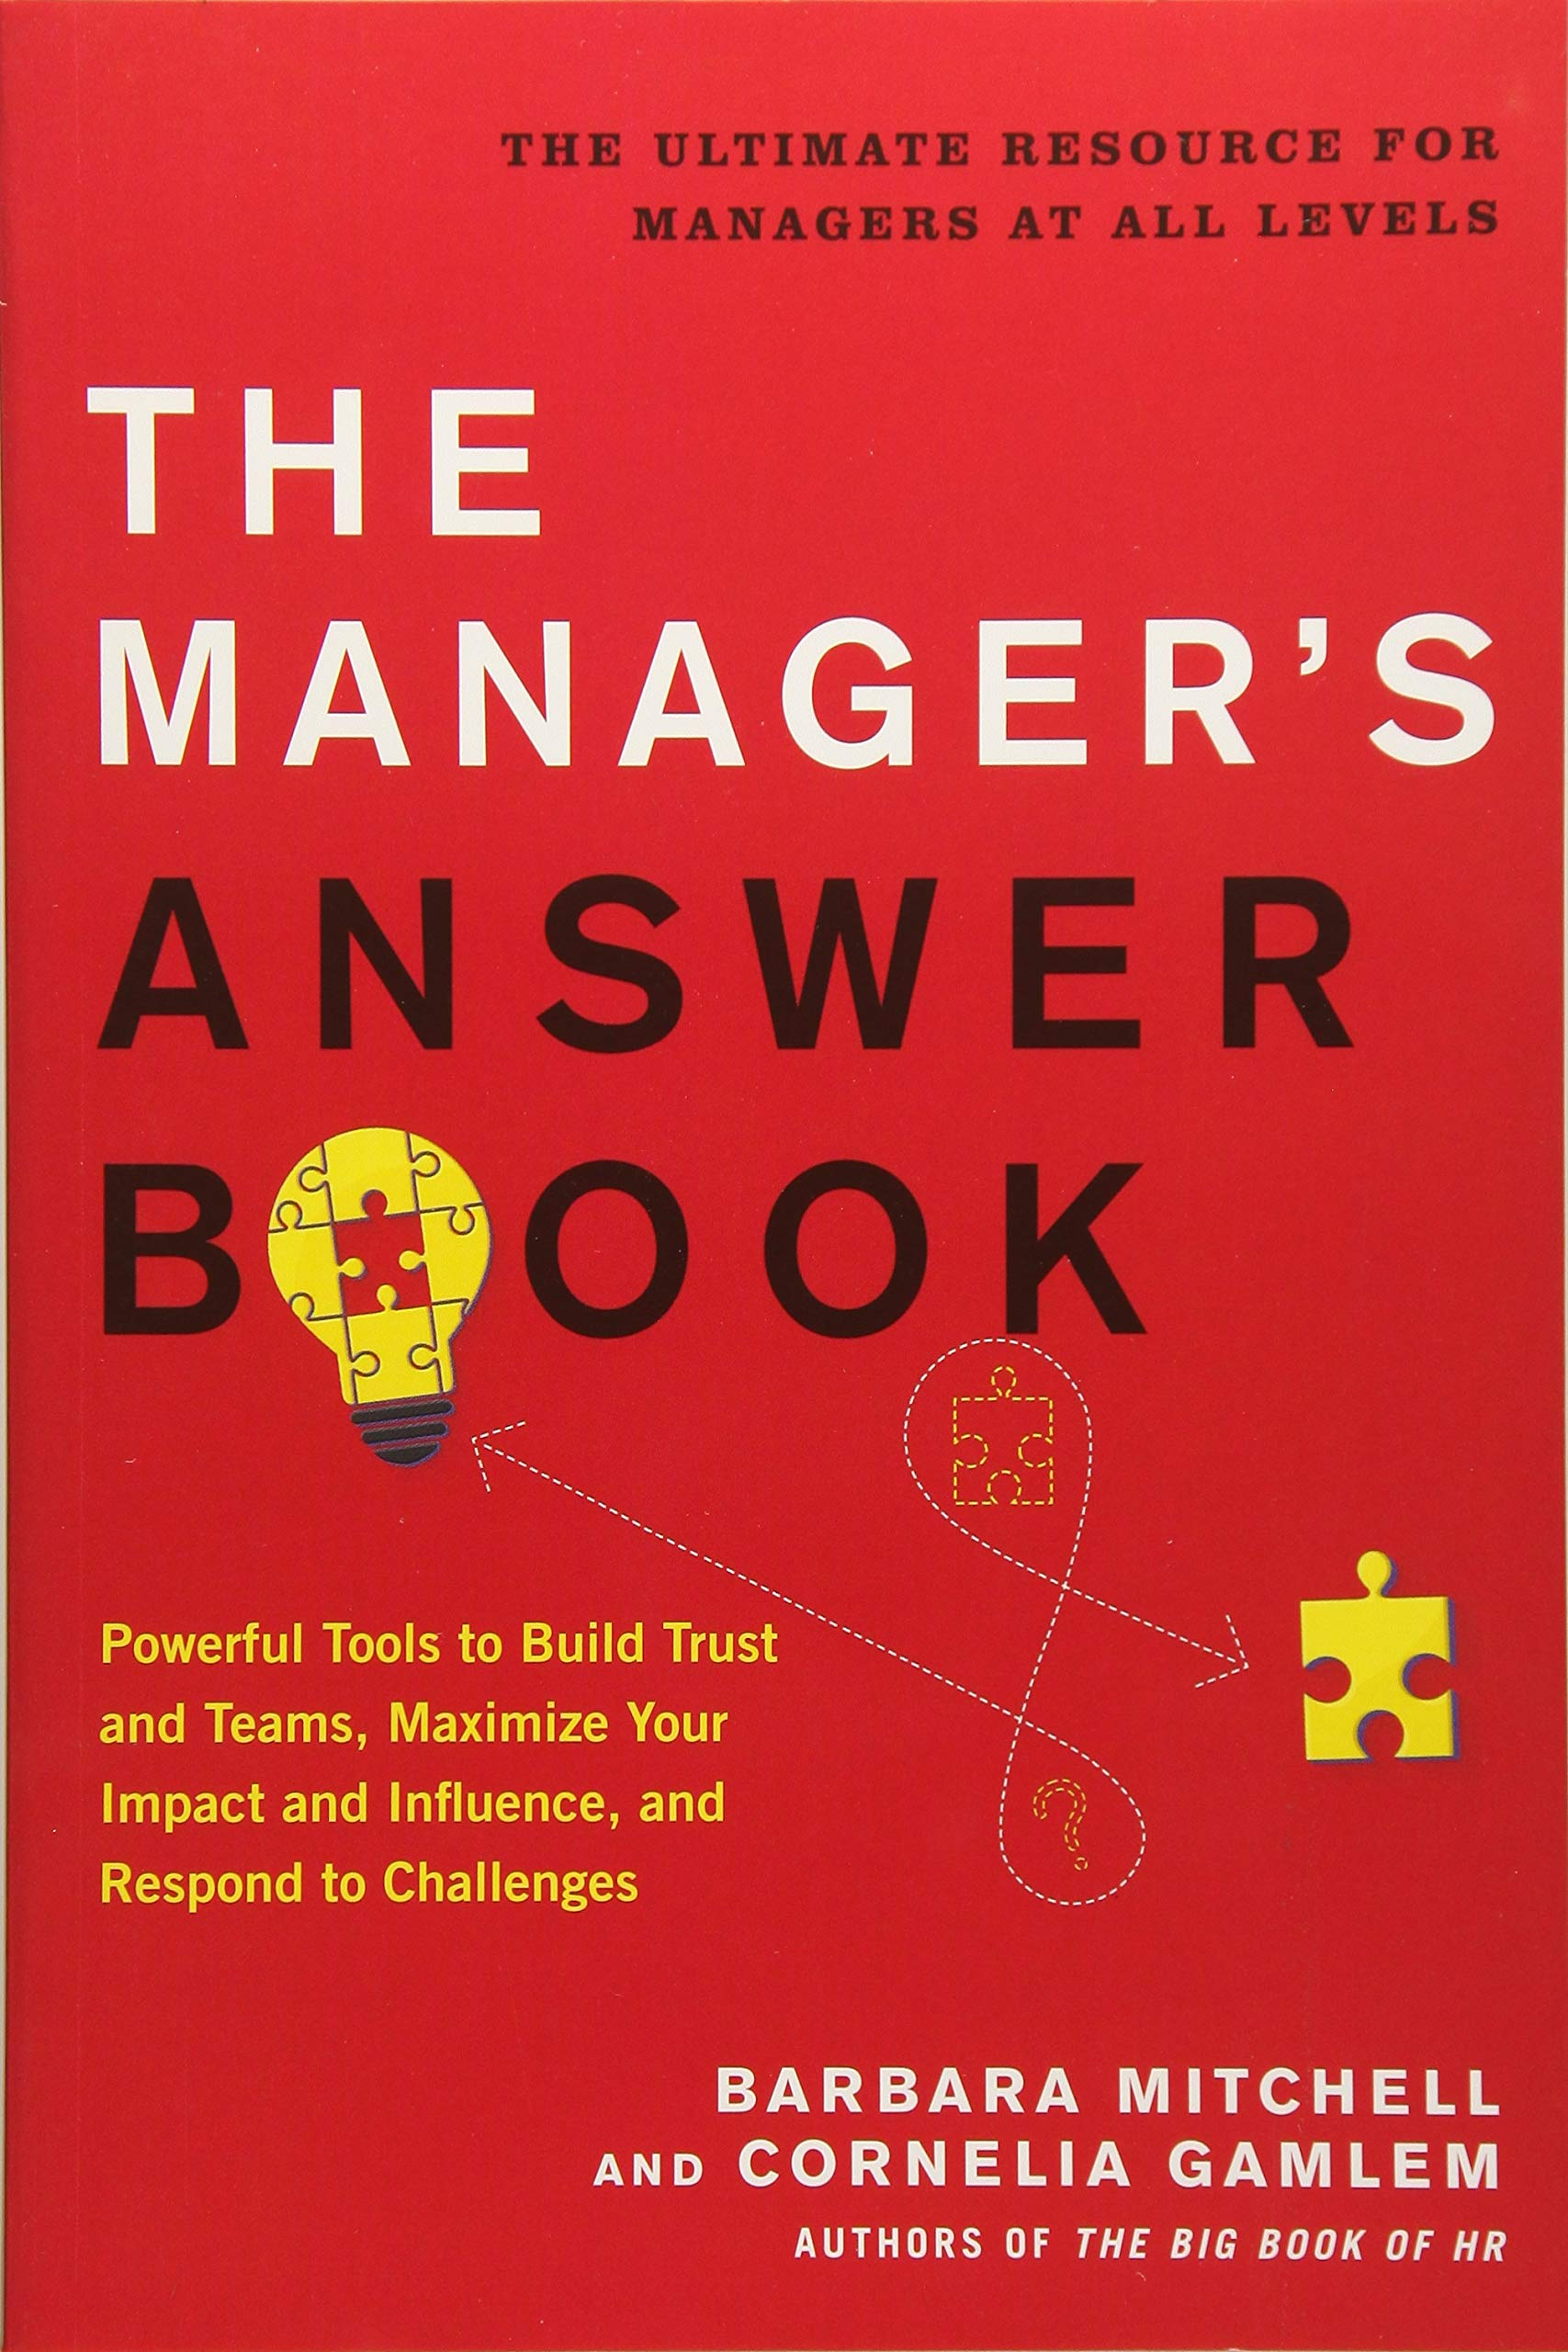 The Manager's Answer Book: Powerful Tools to Build Trust and Teams, Maximize Your Impact and Influence, and Respond to Challenges Paperback – June 18, 2018 Barbara Mitchell Cornelia Gamlem Career Press 1632651416